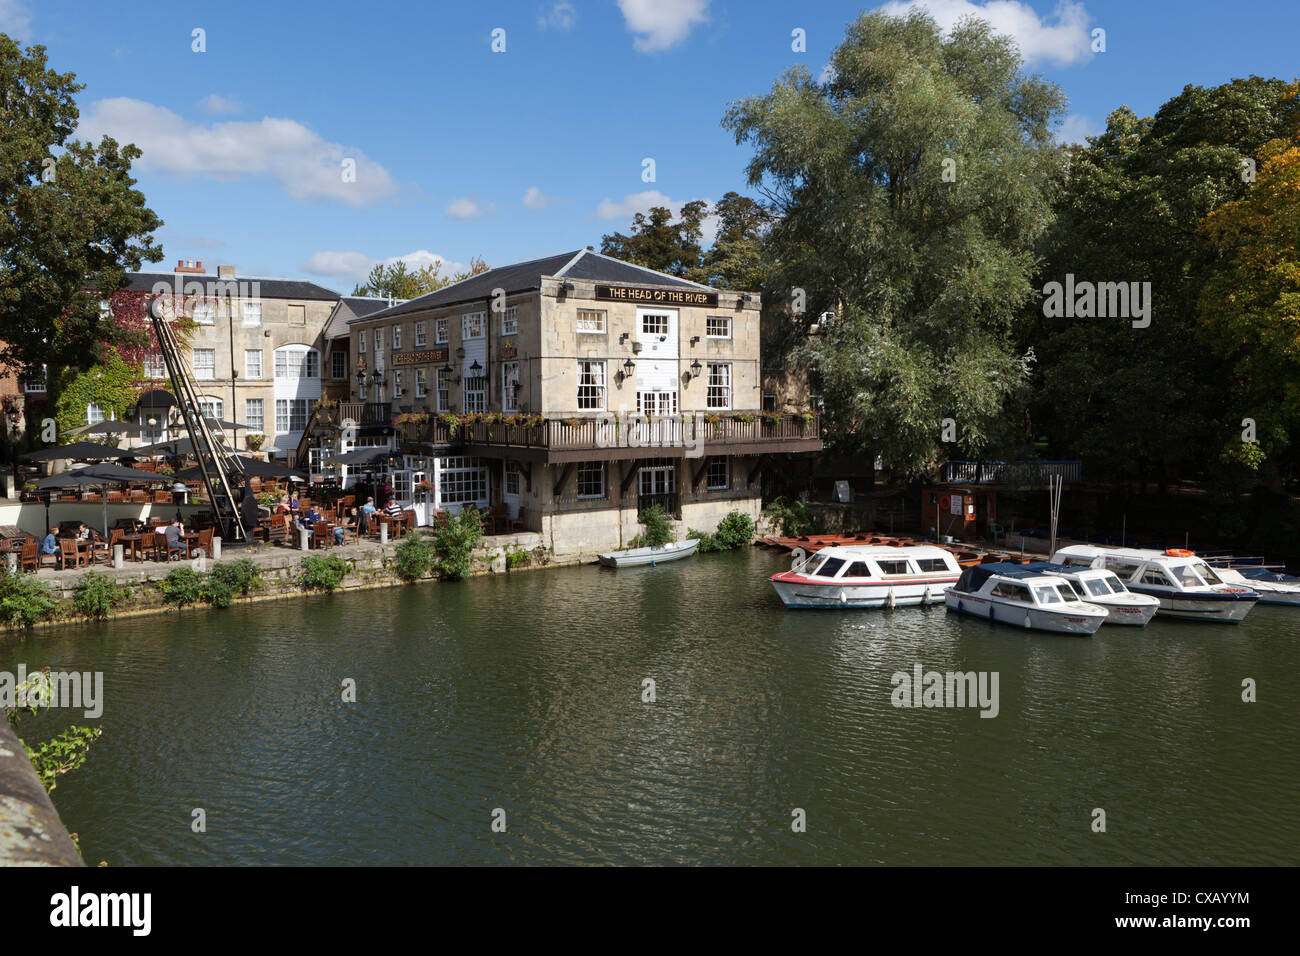 The Head of the River pub beside the River Thames, Oxford, Oxfordshire, England, United Kingdom, Europe - Stock Image